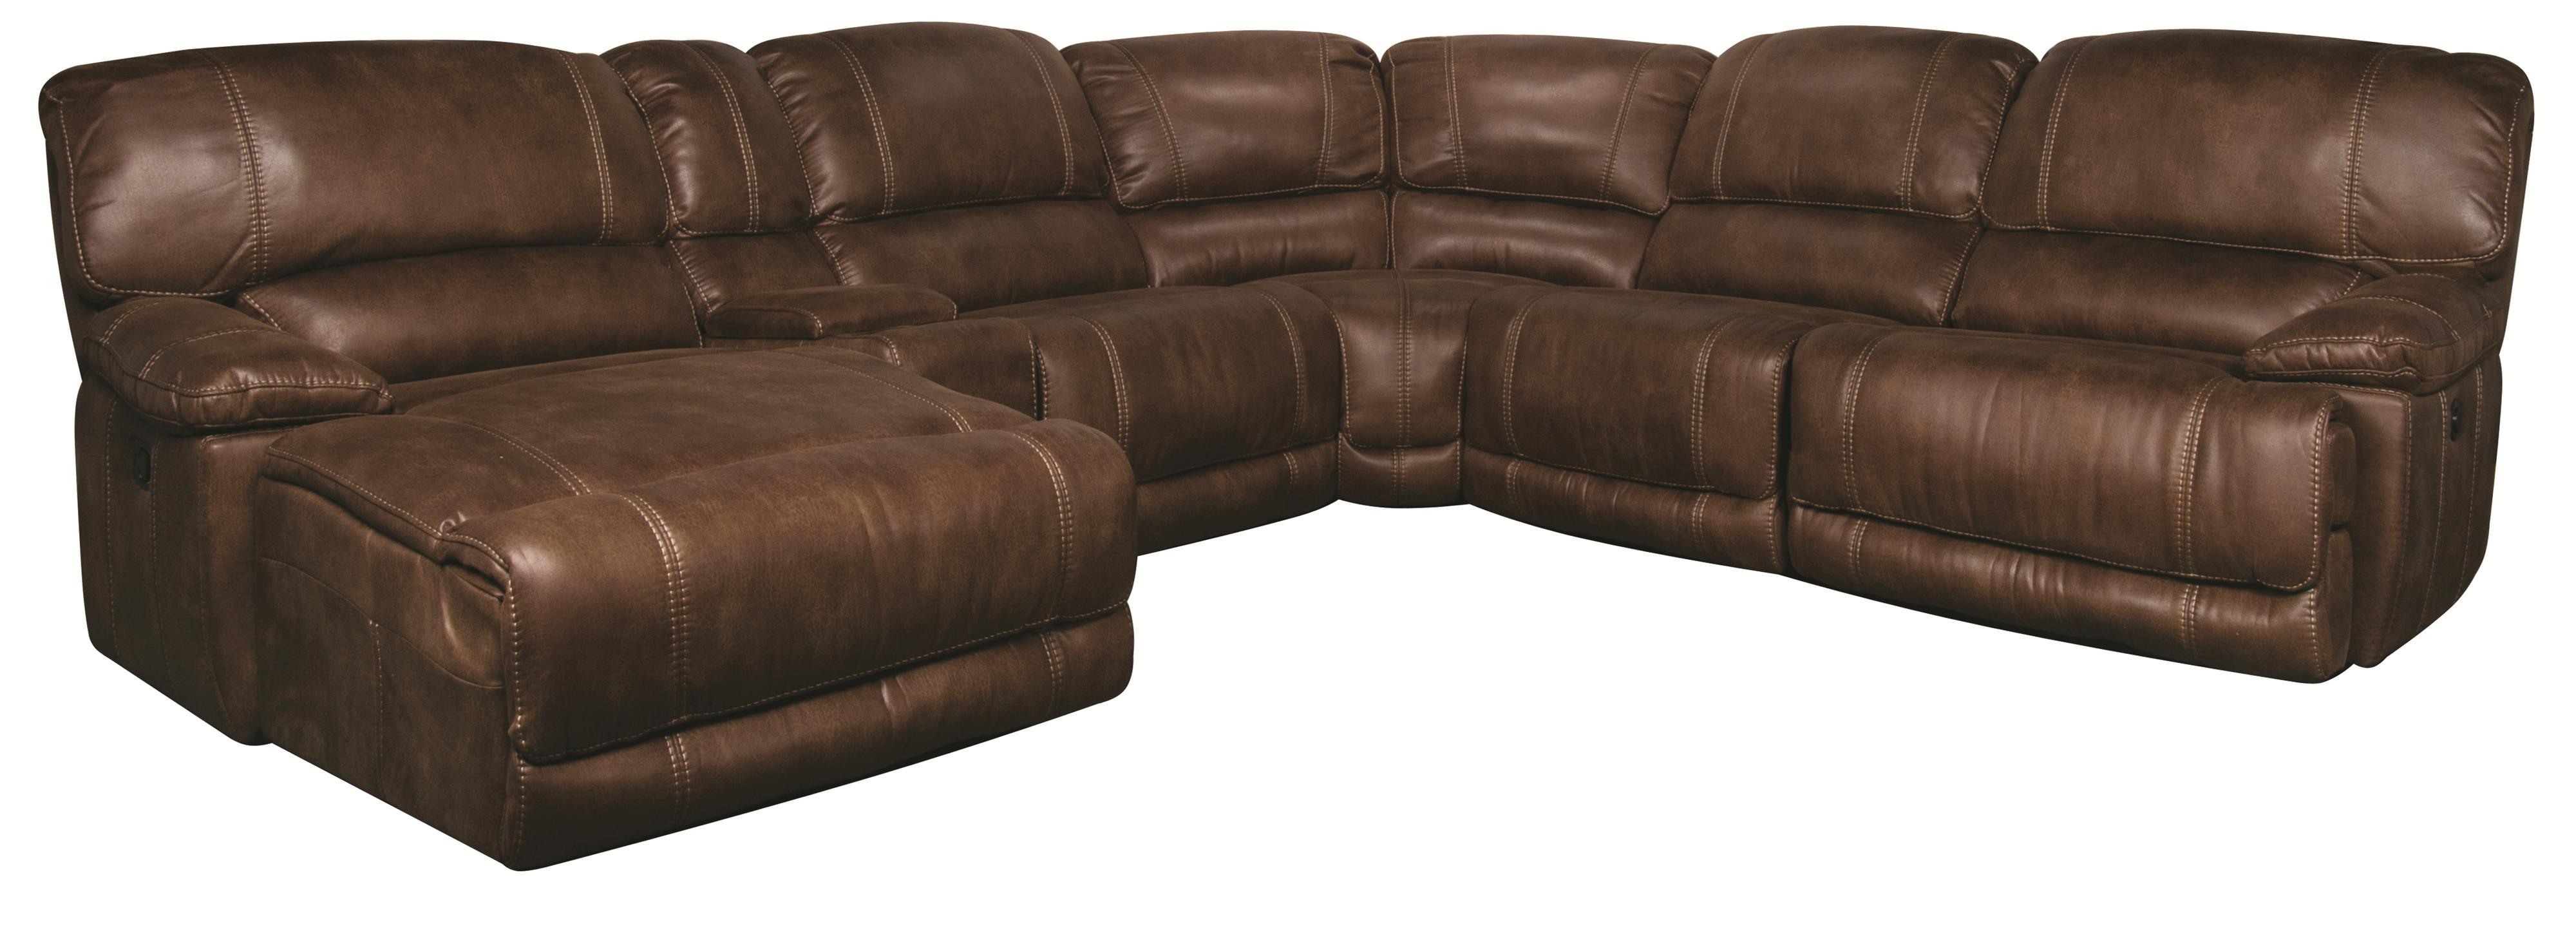 Morris Home Sandra Sandra 6-Piece Power Reclining Sectional - Item Number: 134032462